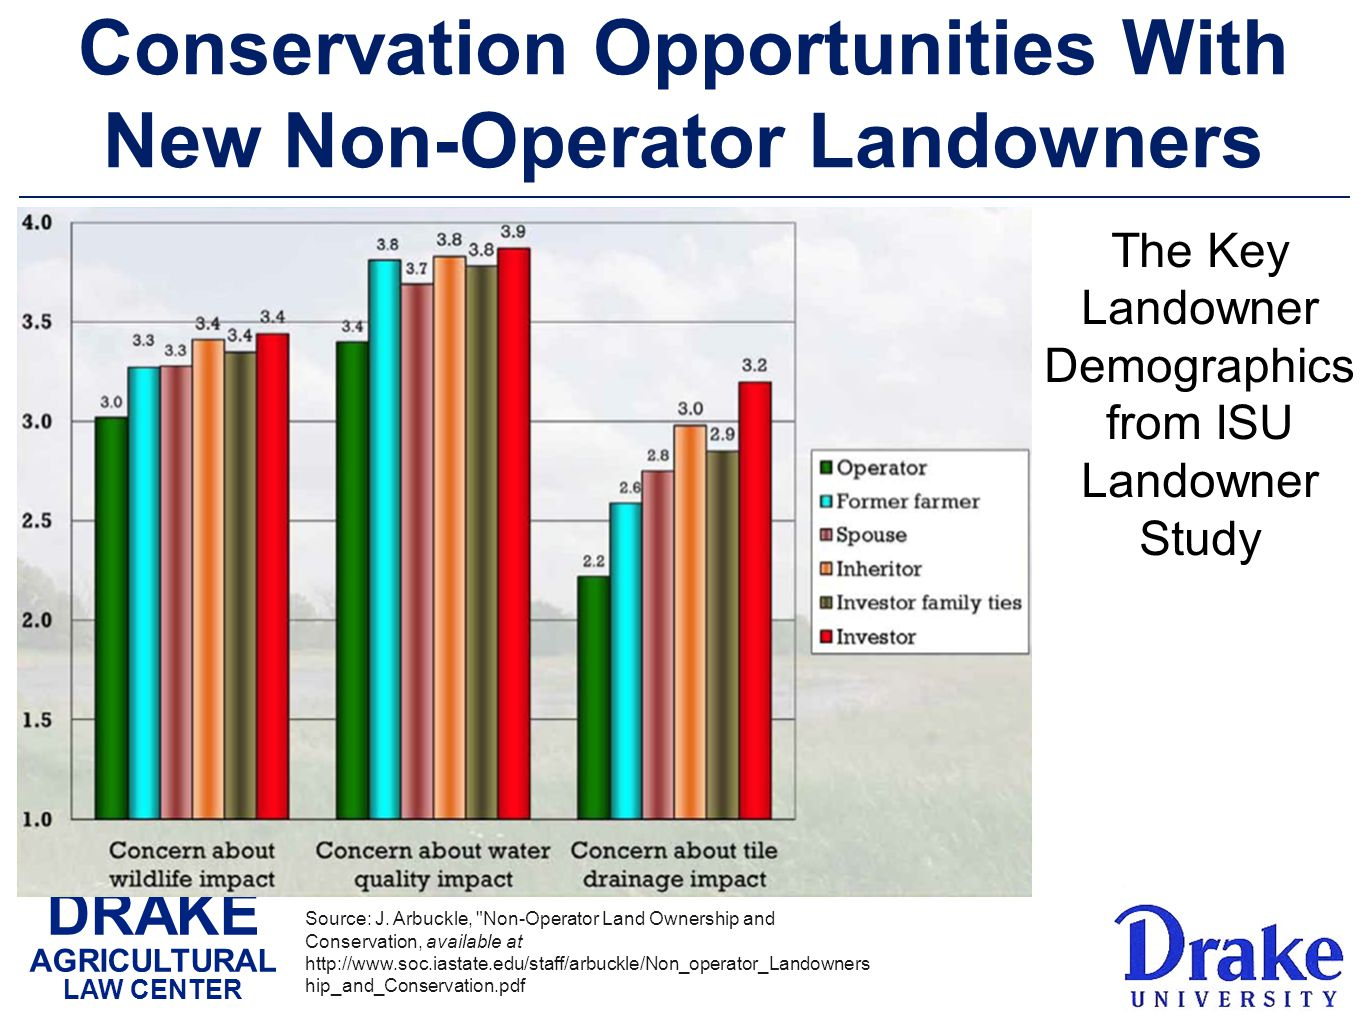 DRAKE AGRICULTURAL LAW CENTER Conservation Opportunities With New Non-Operator Landowners Source: J.